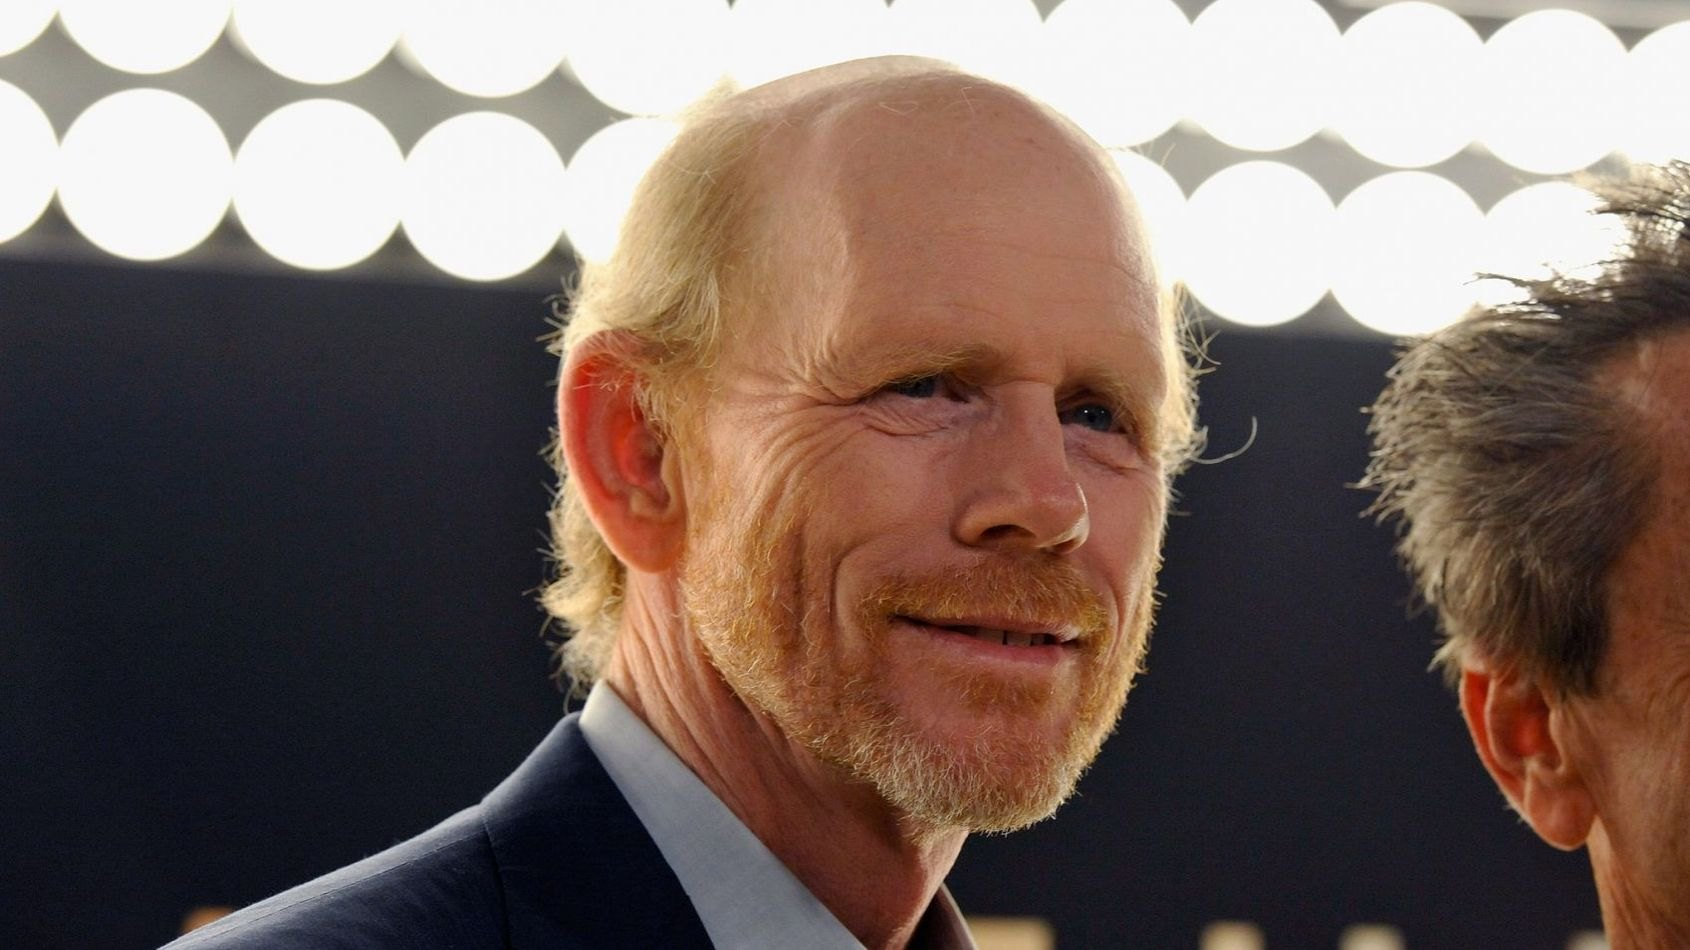 Ron Howard partage une photo de Chewbacca